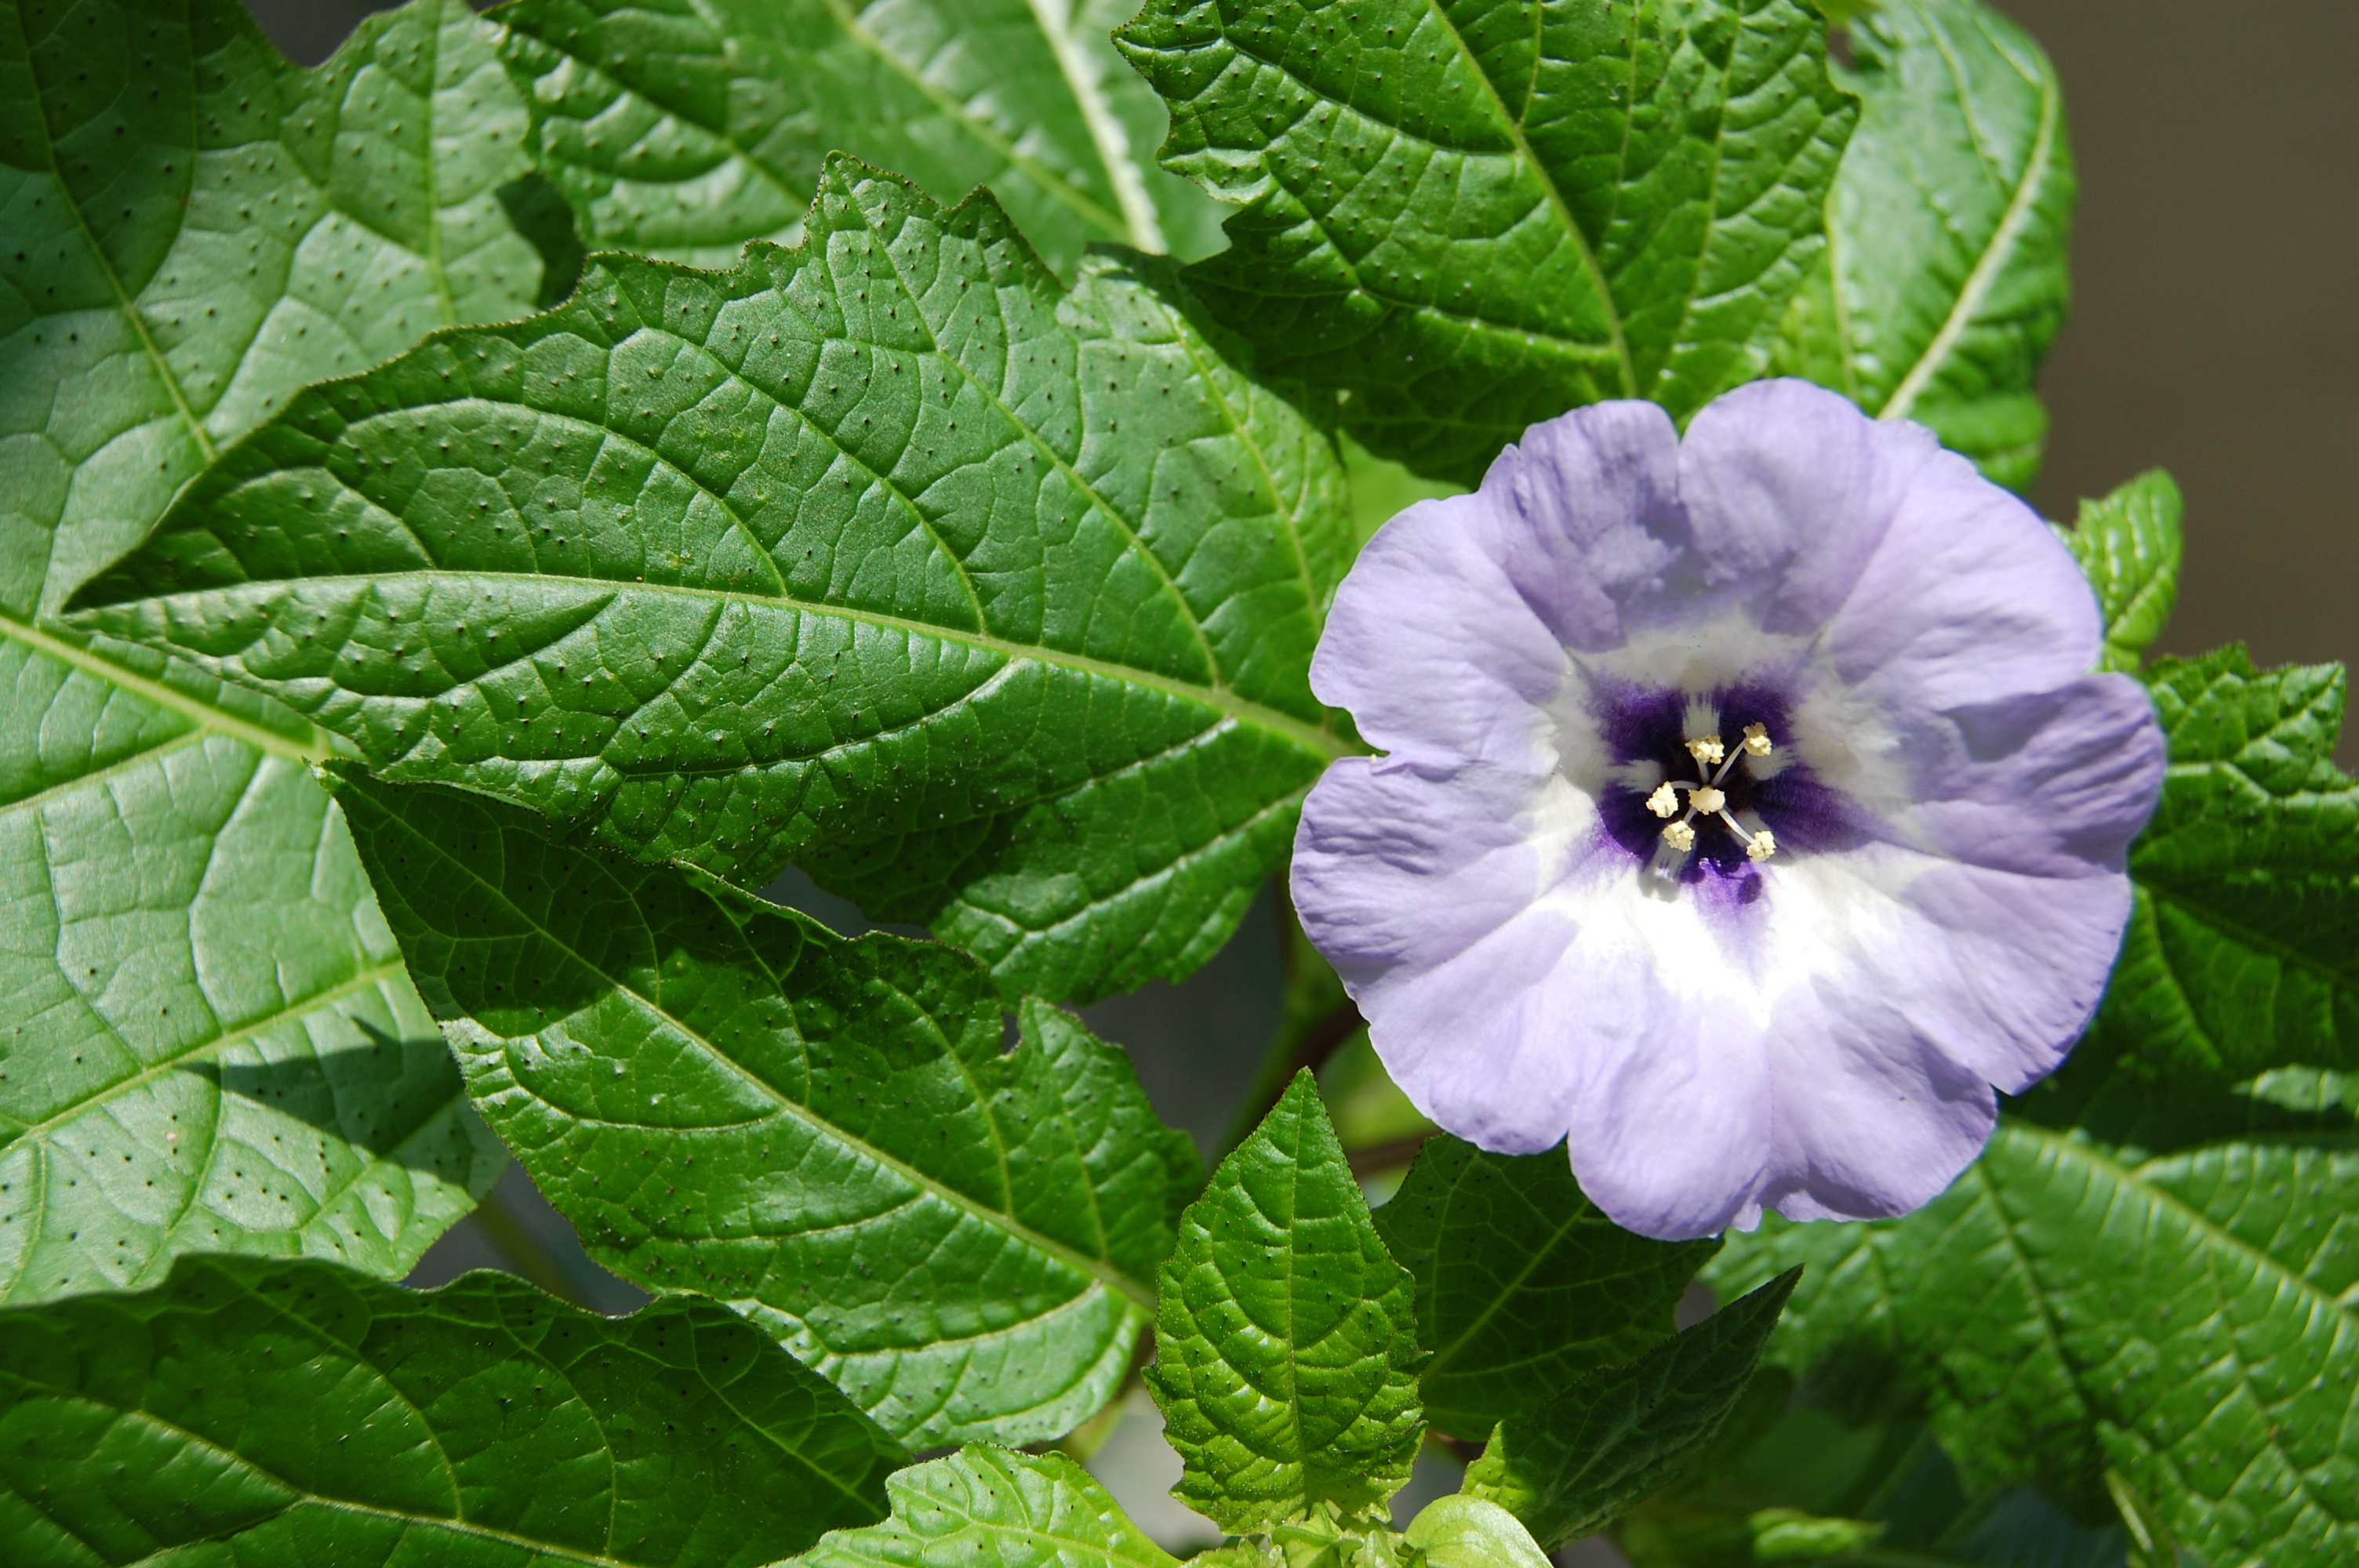 House Flowers: Nightshade and Peculiarities of Care